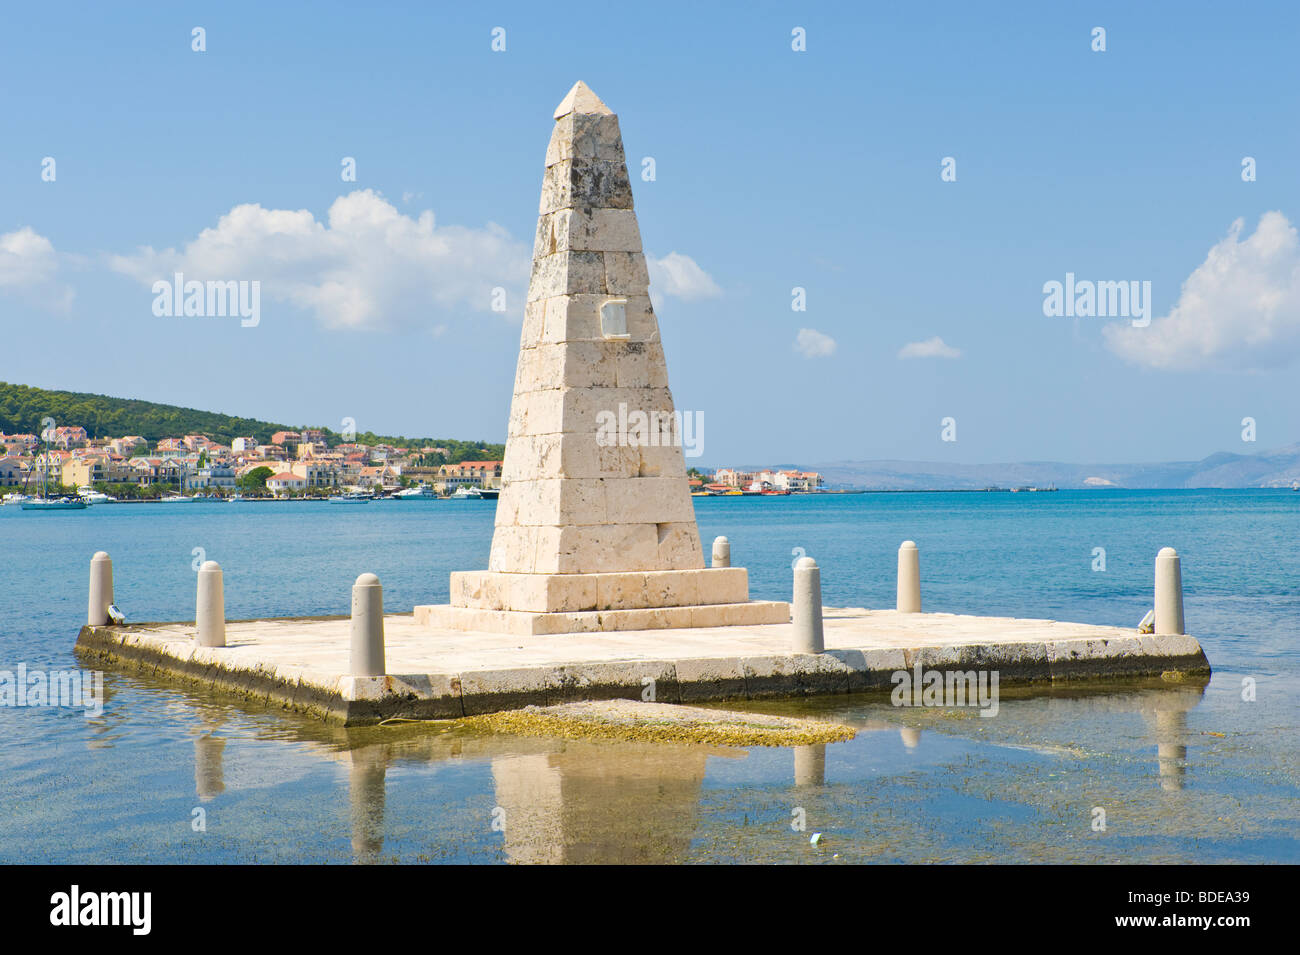 Monument for the British administration in Argostoli Bay on the Greek Mediterranean island of Kefalonia Greece GR - Stock Image